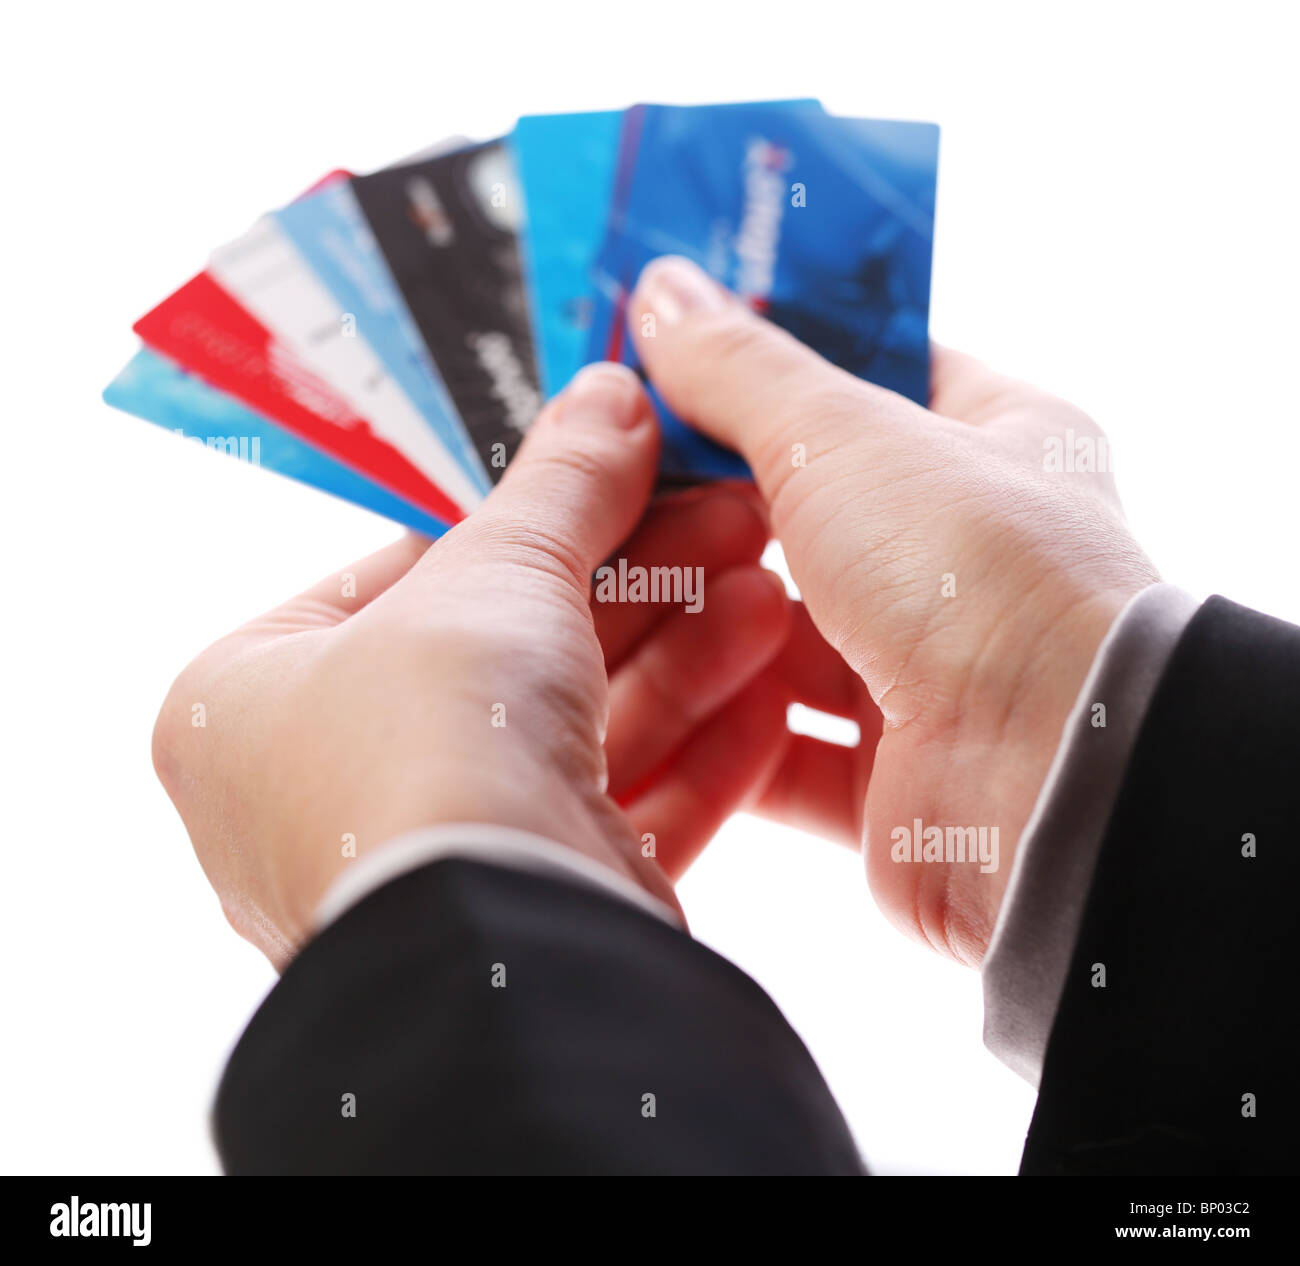 Credit card in the hands of women - Stock Image